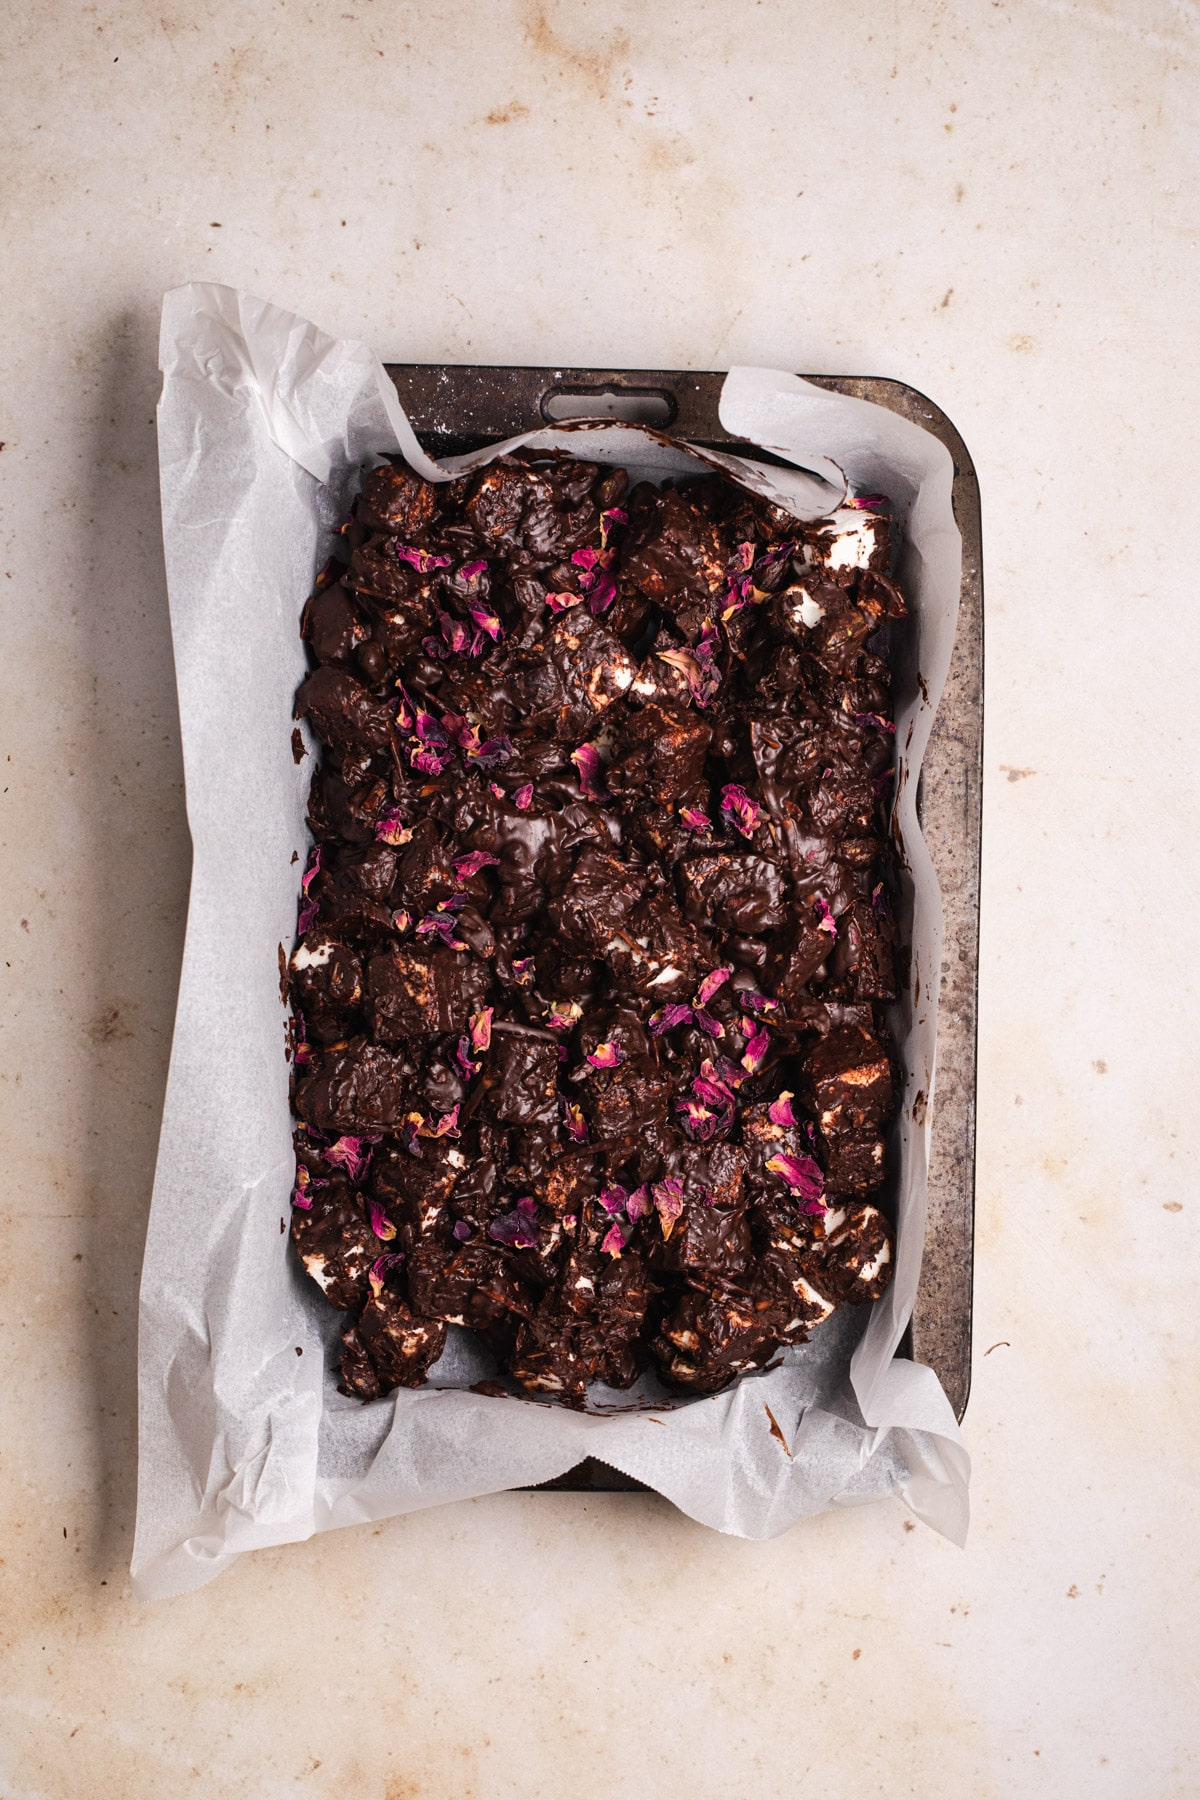 healthy rocky road topped with dried rose petals